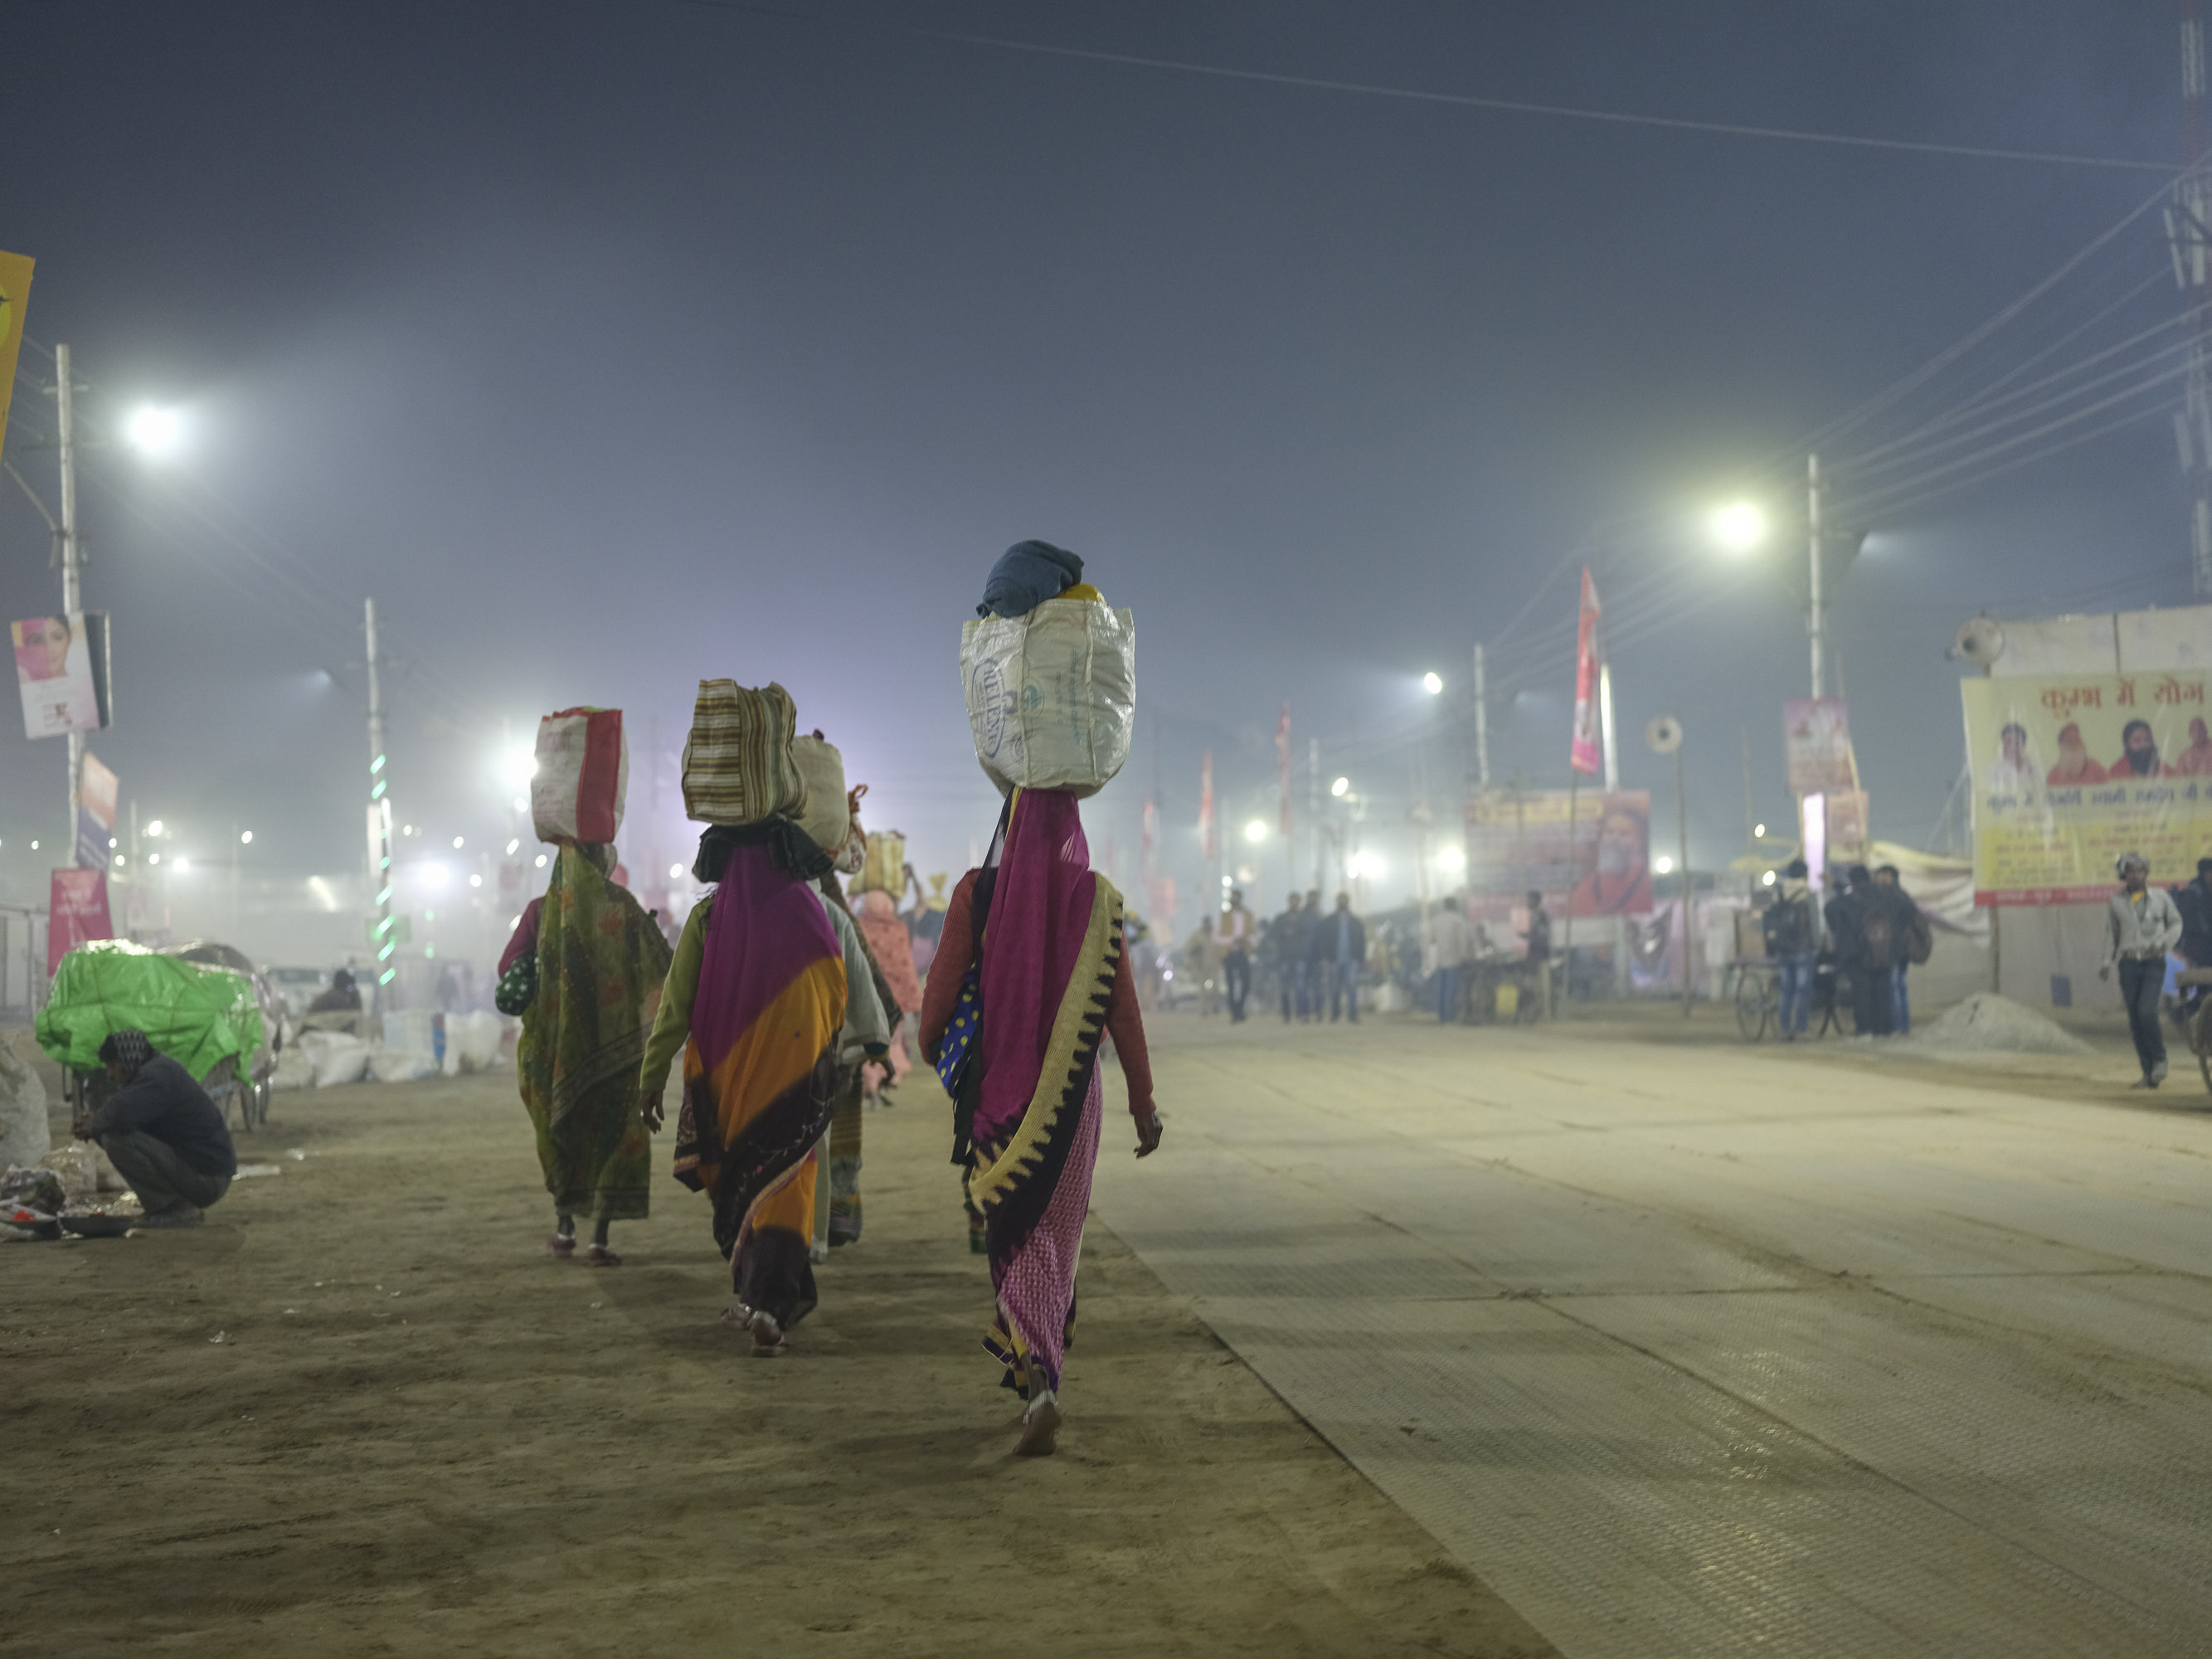 night walk camp pilgrims Kumbh mela 2019 India Allahabad Prayagraj Ardh hindu religious Festival event rivers photographer jose jeuland photography